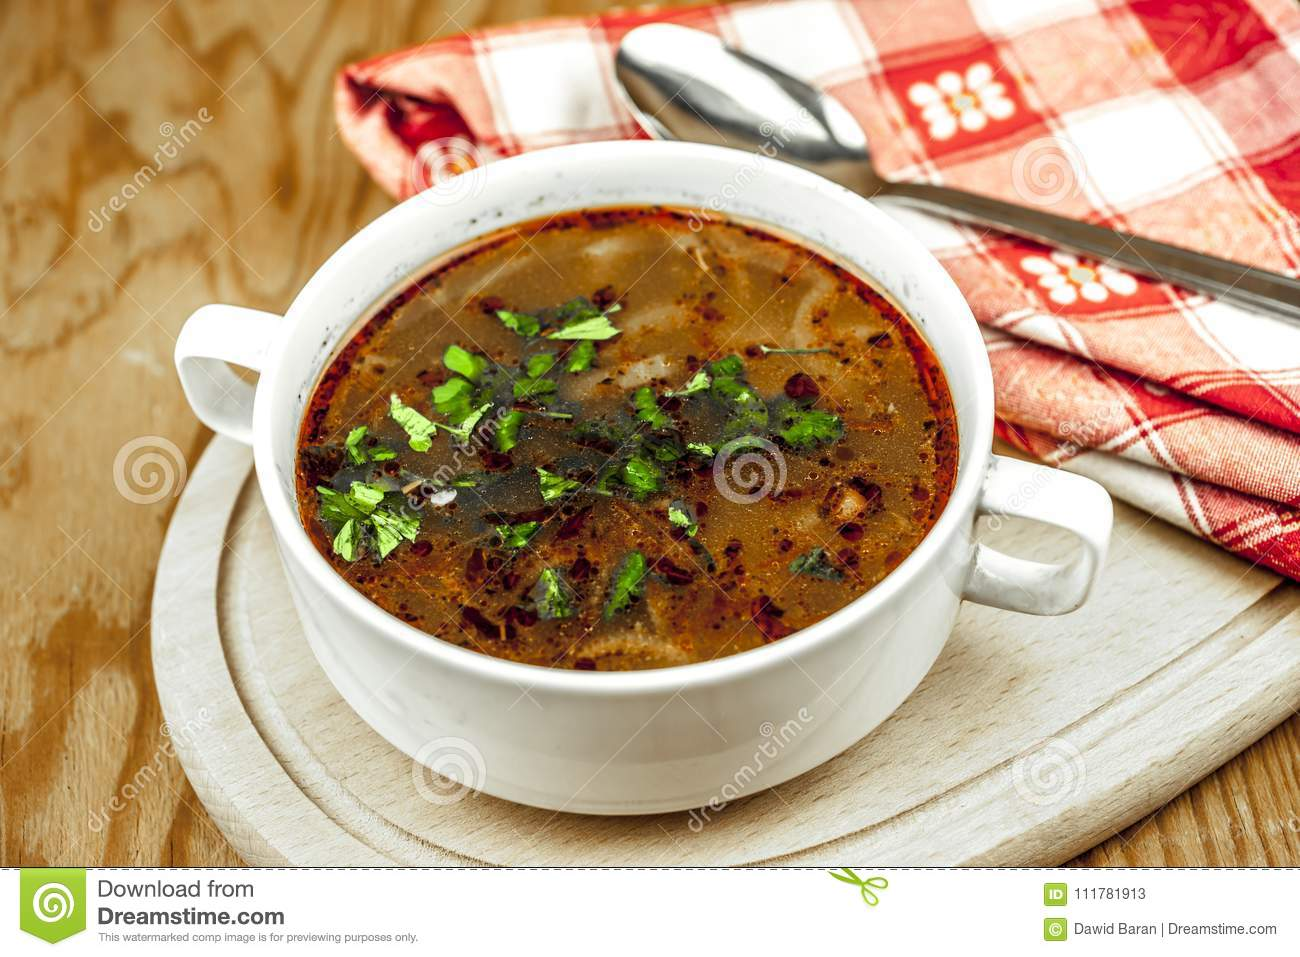 Cup of onion soup